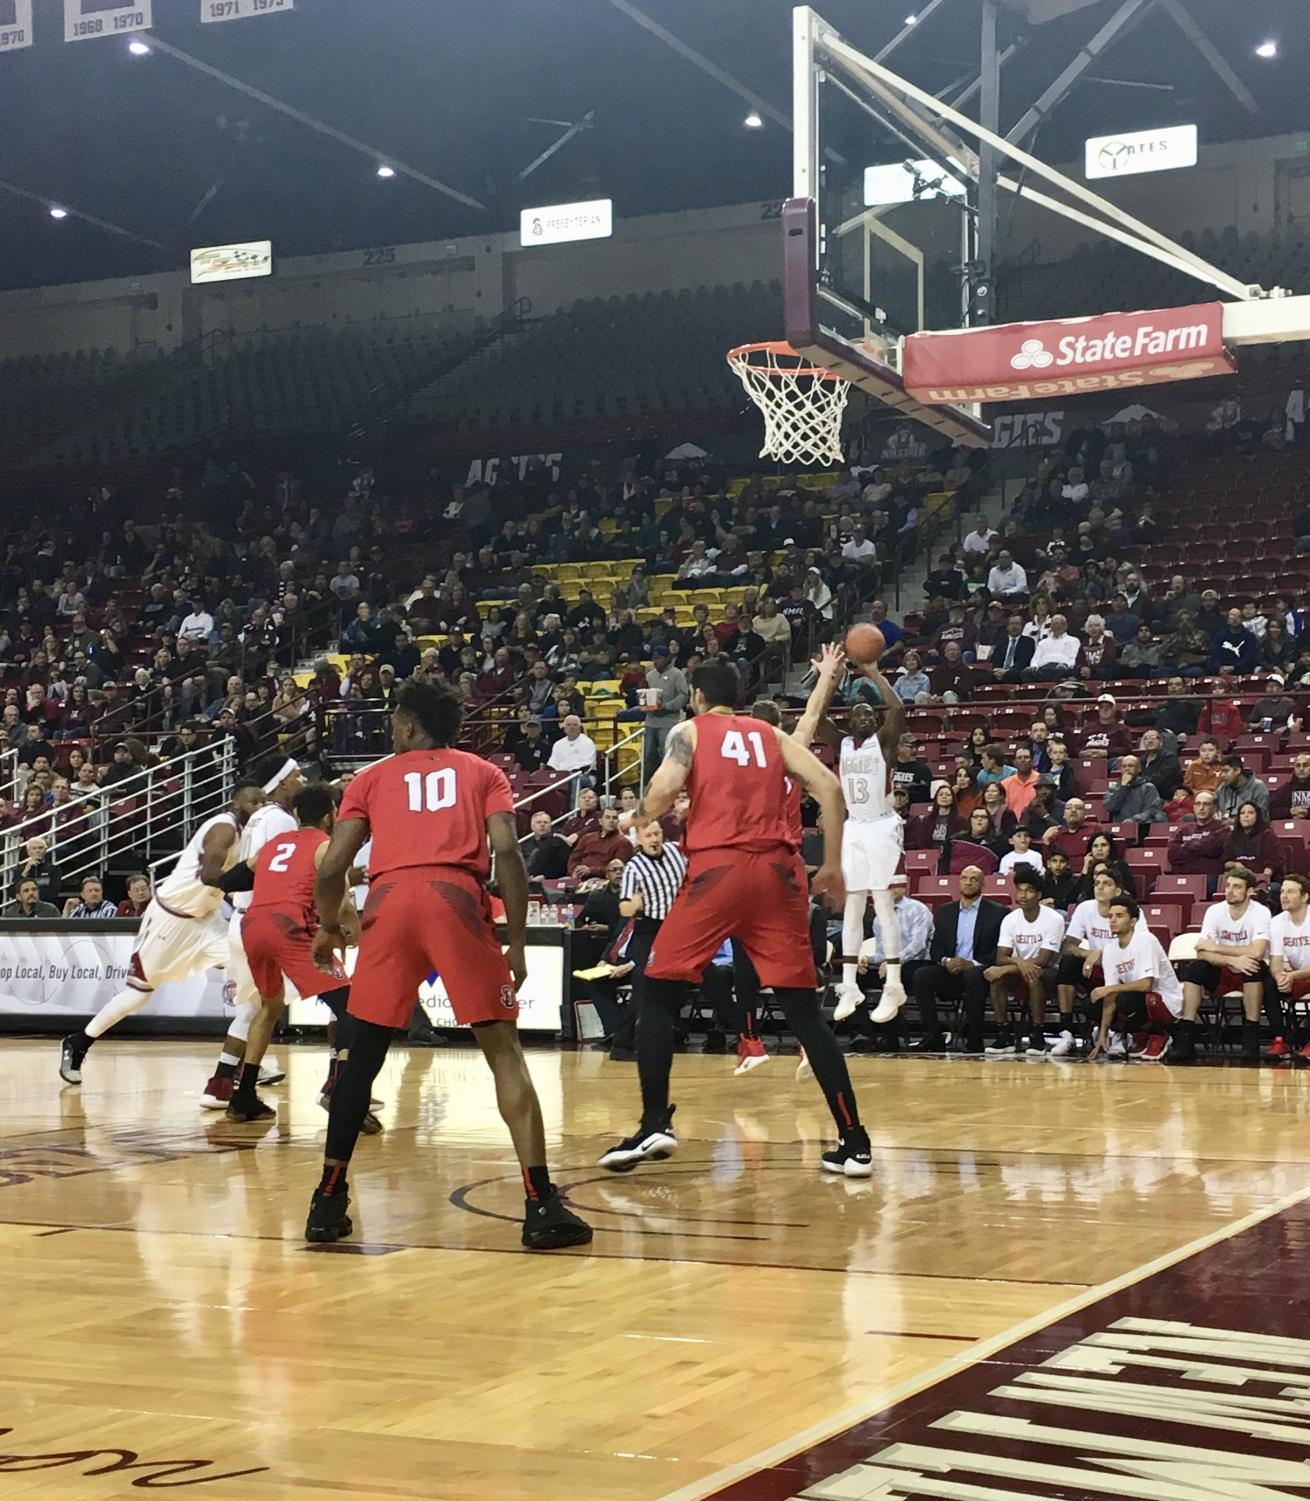 Redshirt junior guard Sidy N'Dir puts up a three-point shot as the Aggies grabbed the victory and remained undefeated in WAC play.